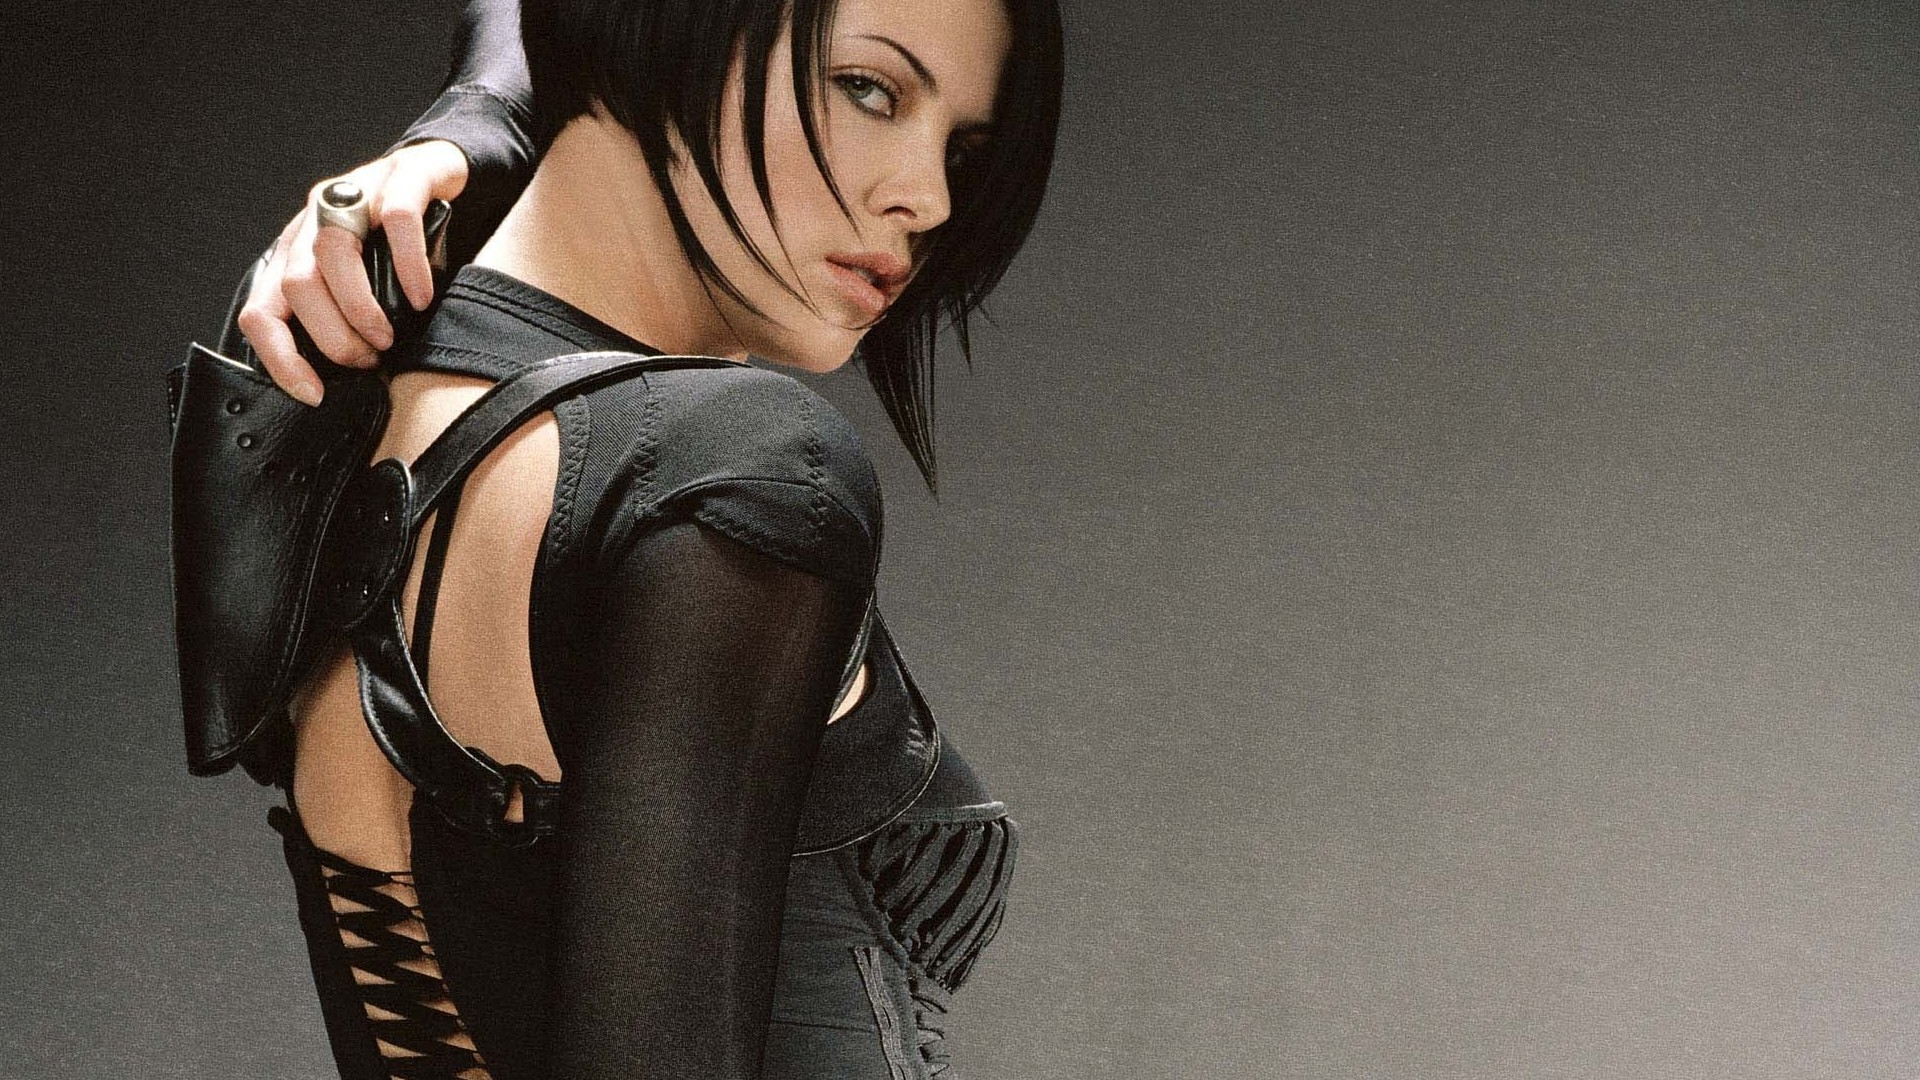 1920x1080 - Charlize Theron Wallpapers 2